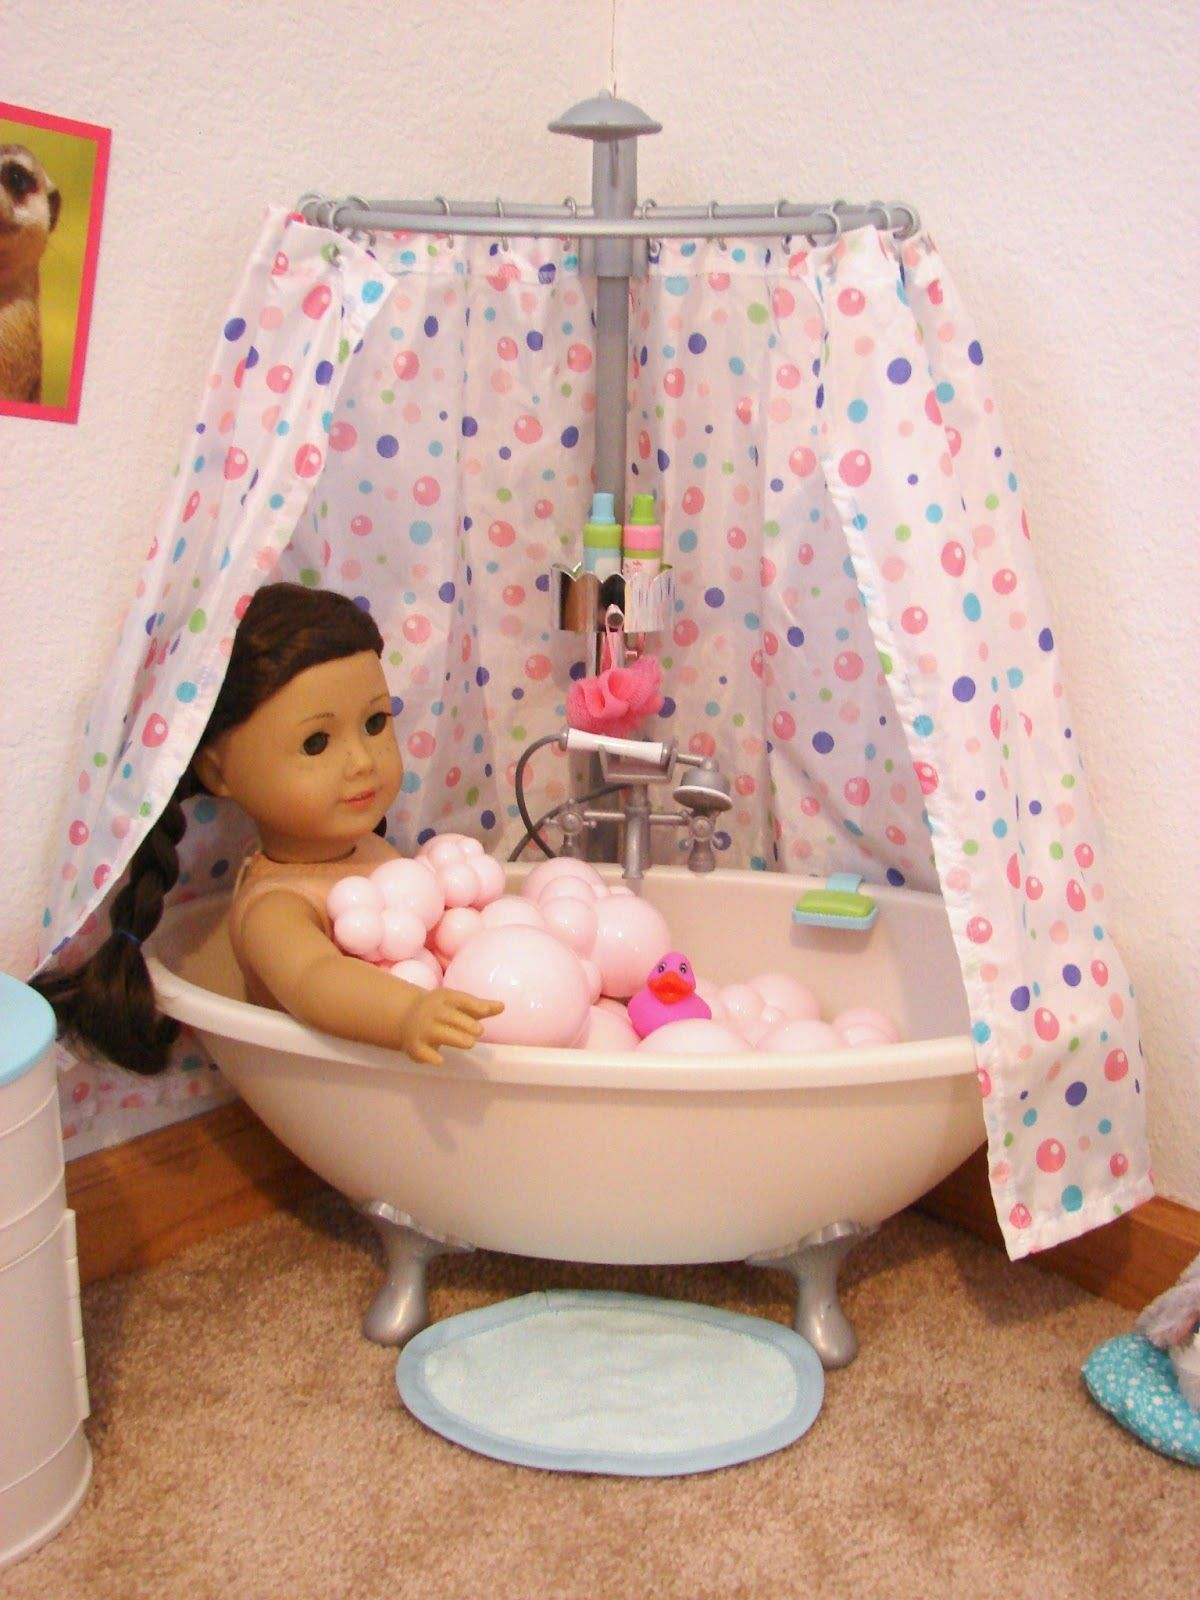 american girl bubble tub - Google Search | AG Dolls | Pinterest ...